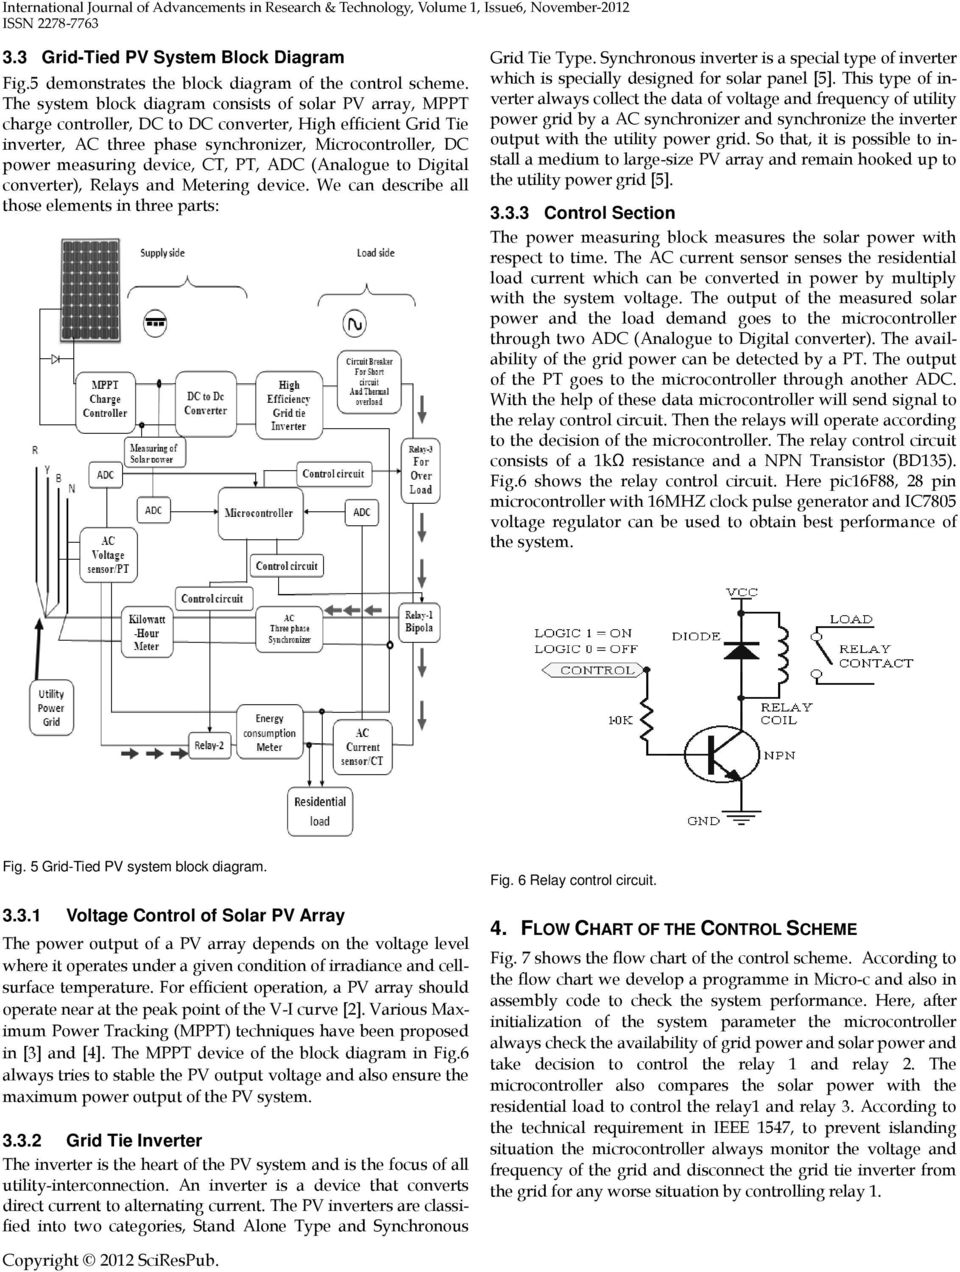 A New Approach To Design Of An Optimized Grid Tied Smart Solar Figure 3 Schematic Diagram The Charge Controller Circuit Device Ct Pt Adc Analogue Digital Converter Relays And